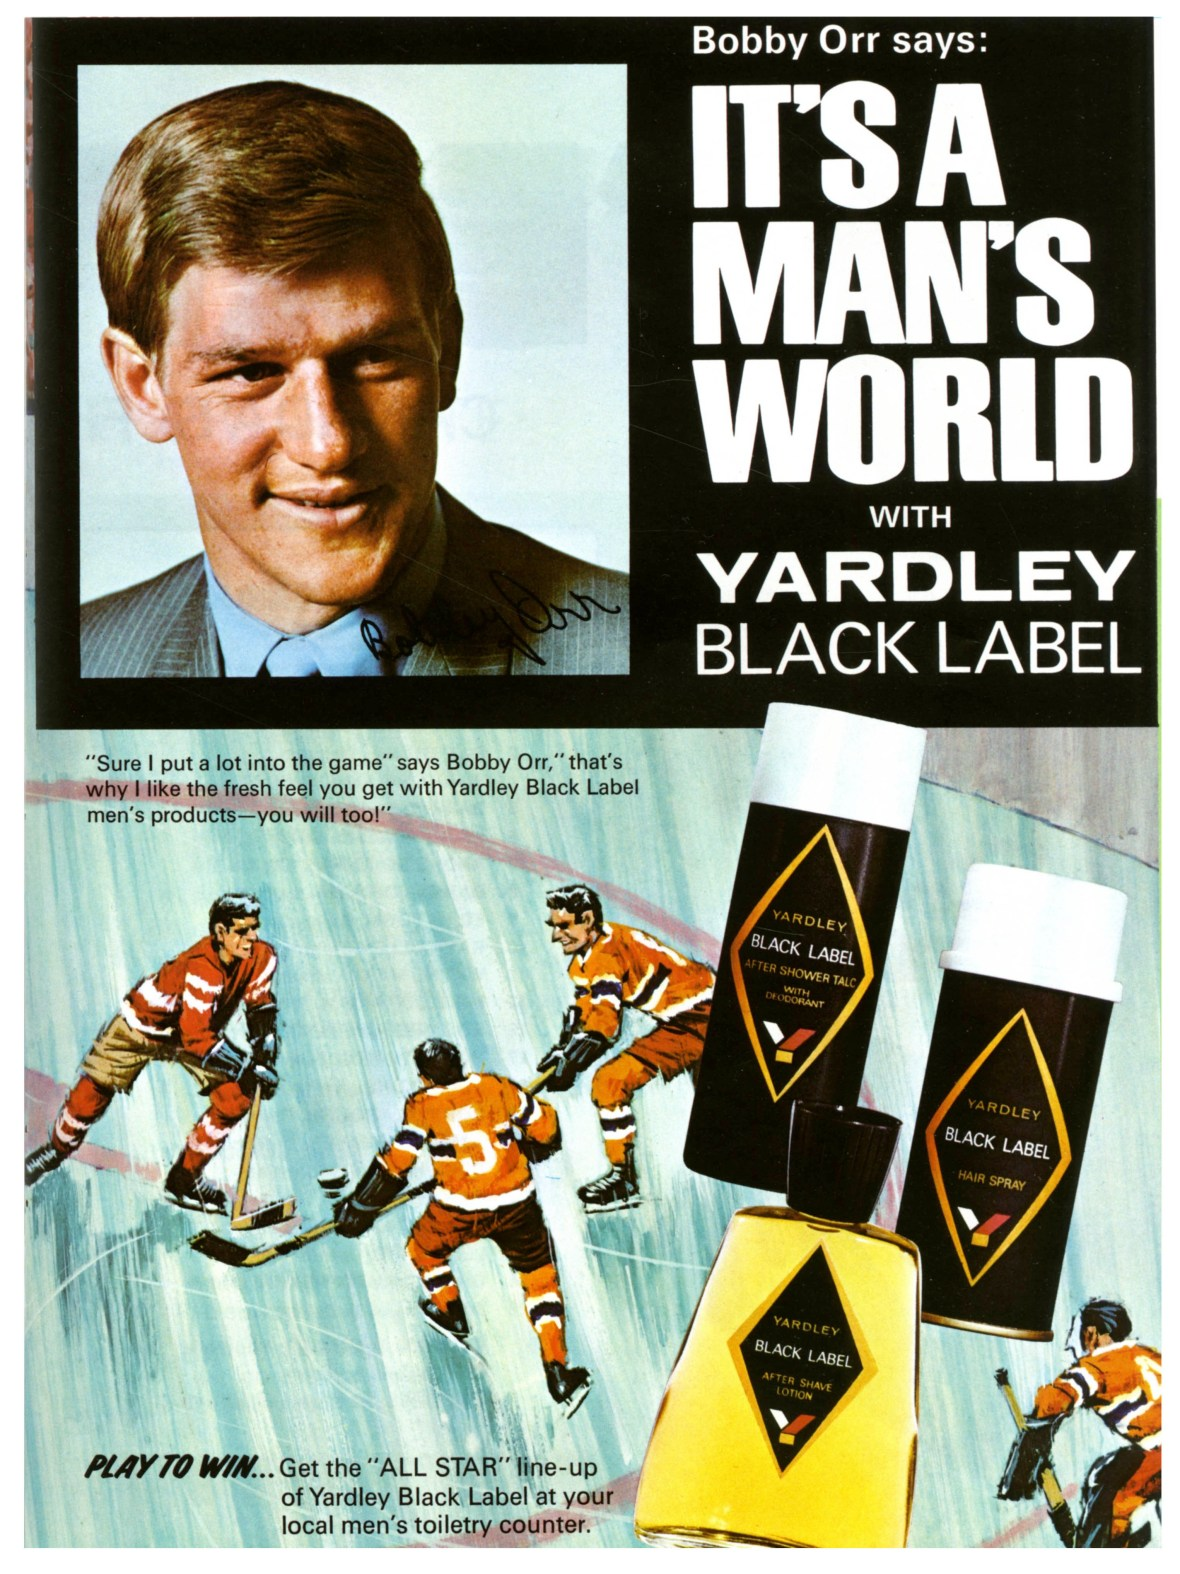 Yardley Black Label featuring Bobby Orr - 1970